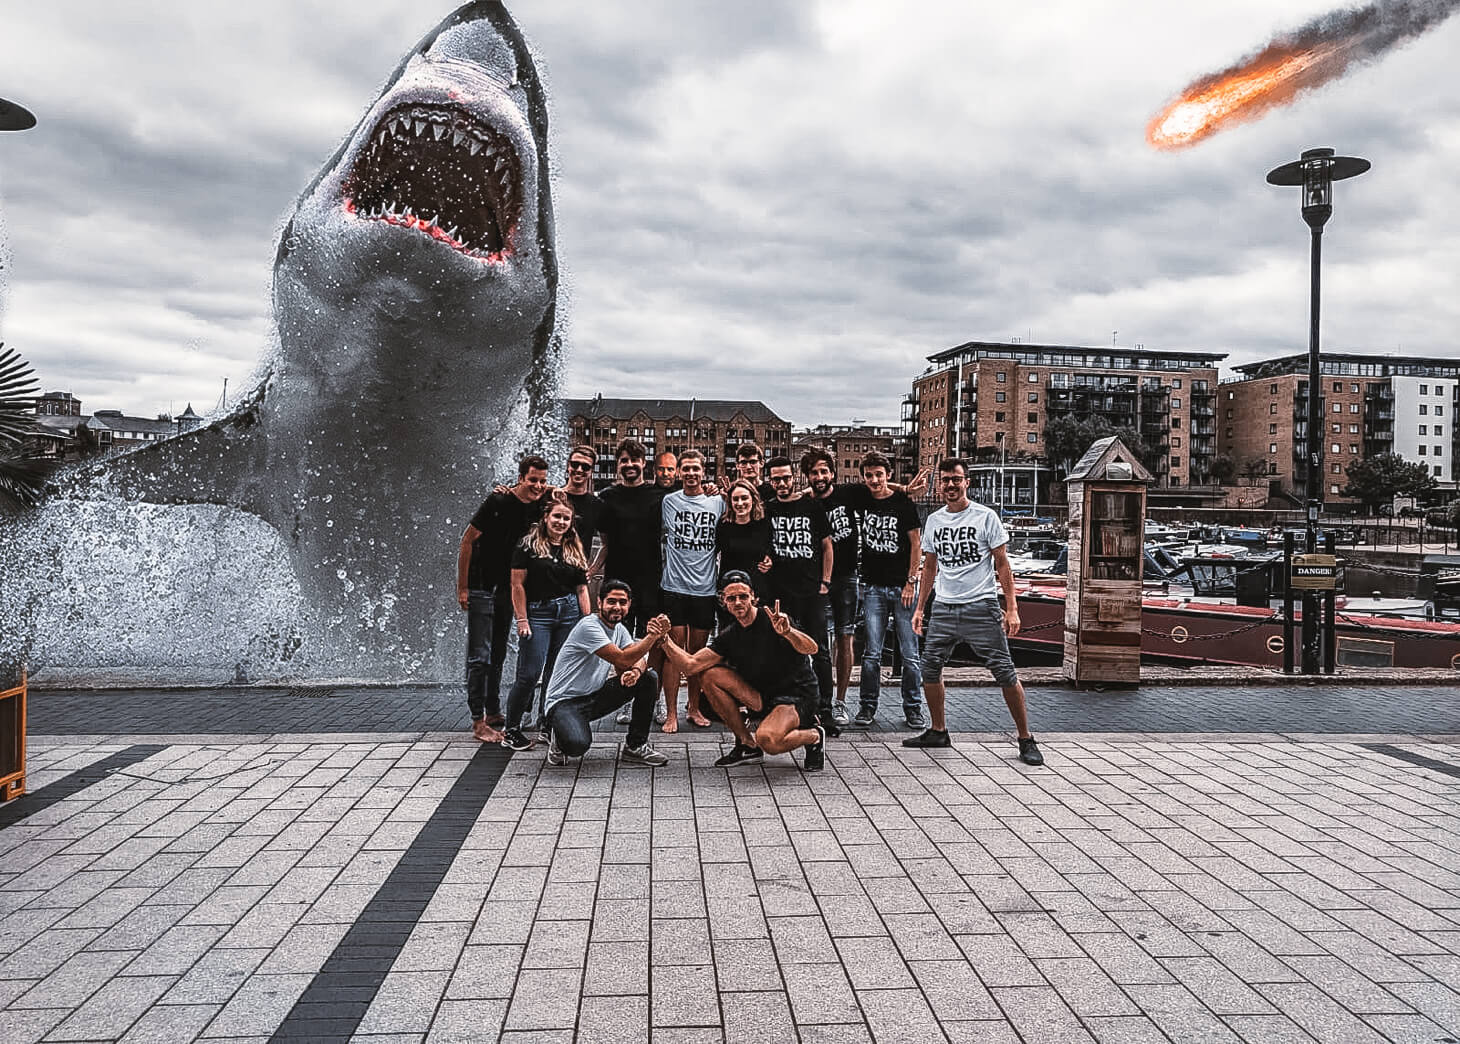 The Neverbland team with The Meg